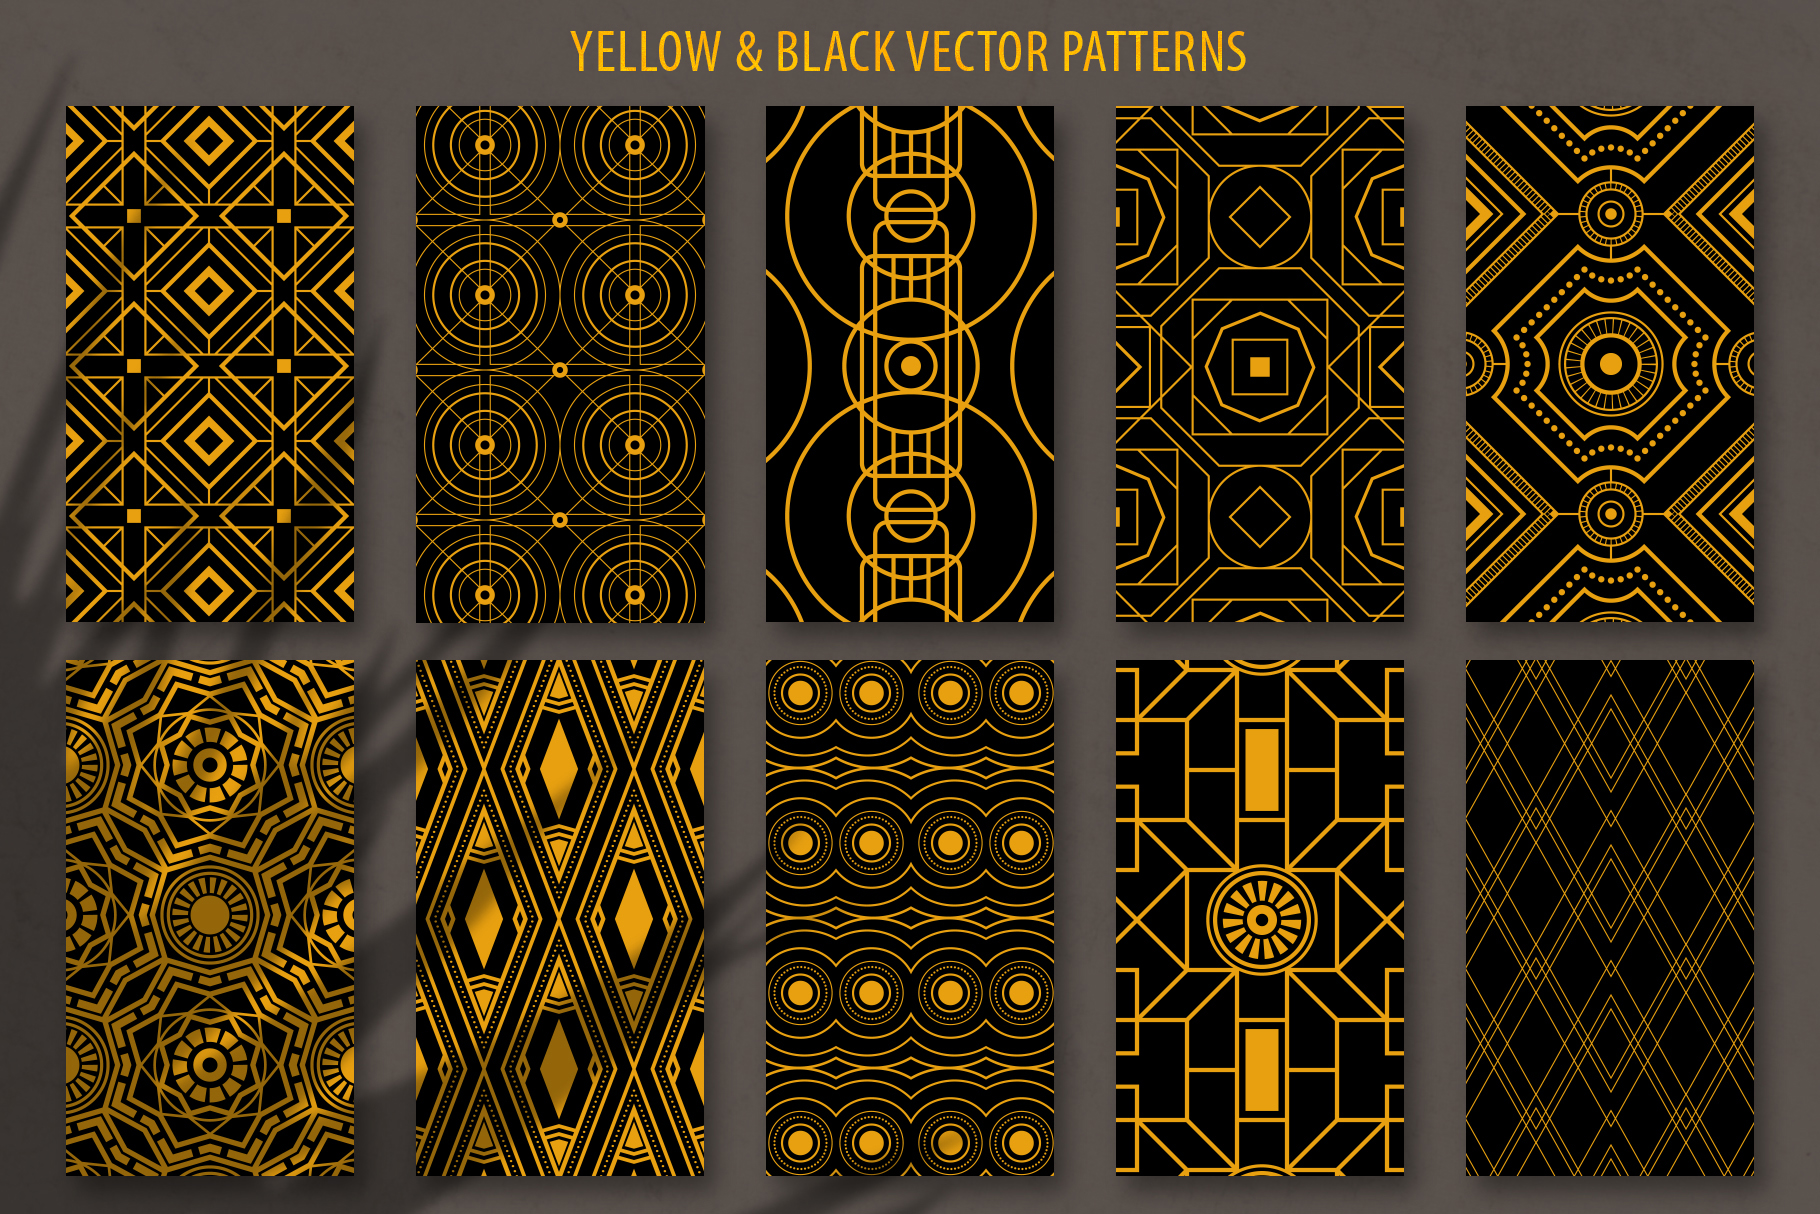 Geometric Art Deco Patterns - 20 Seamless Vector Patterns example image 7